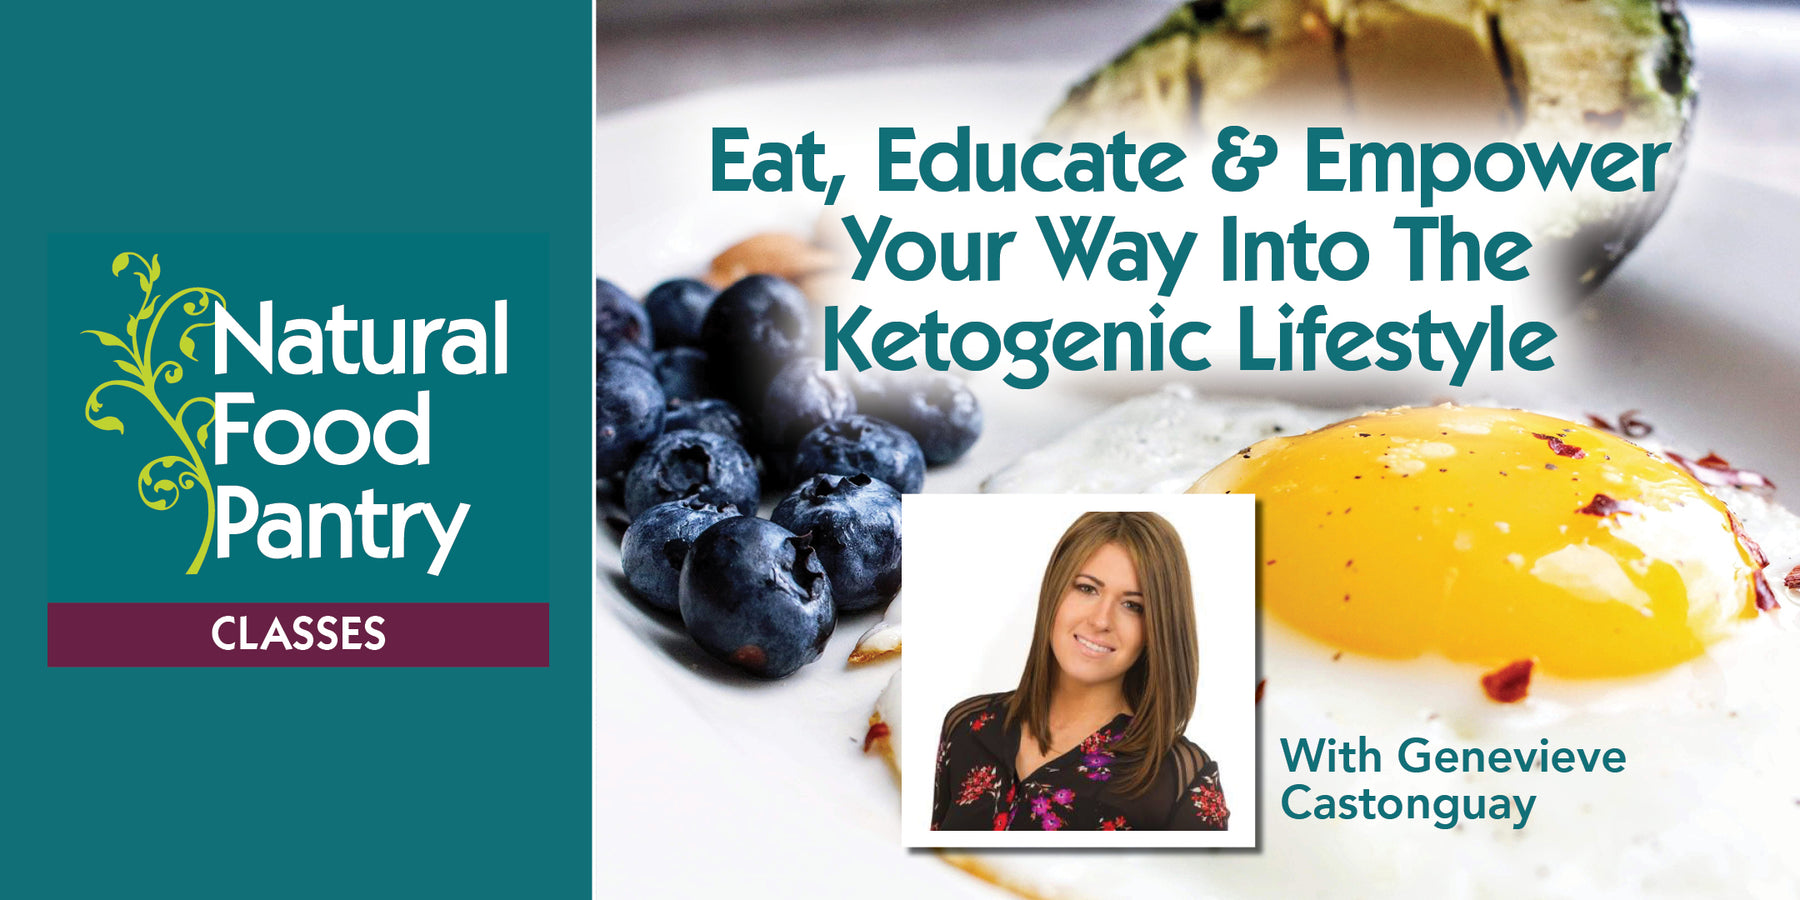 Feb 19, 26, Mar 5: The Keto Experience - Eat, Educate & Empower Your Way Into The Ketogenic Lifestyle